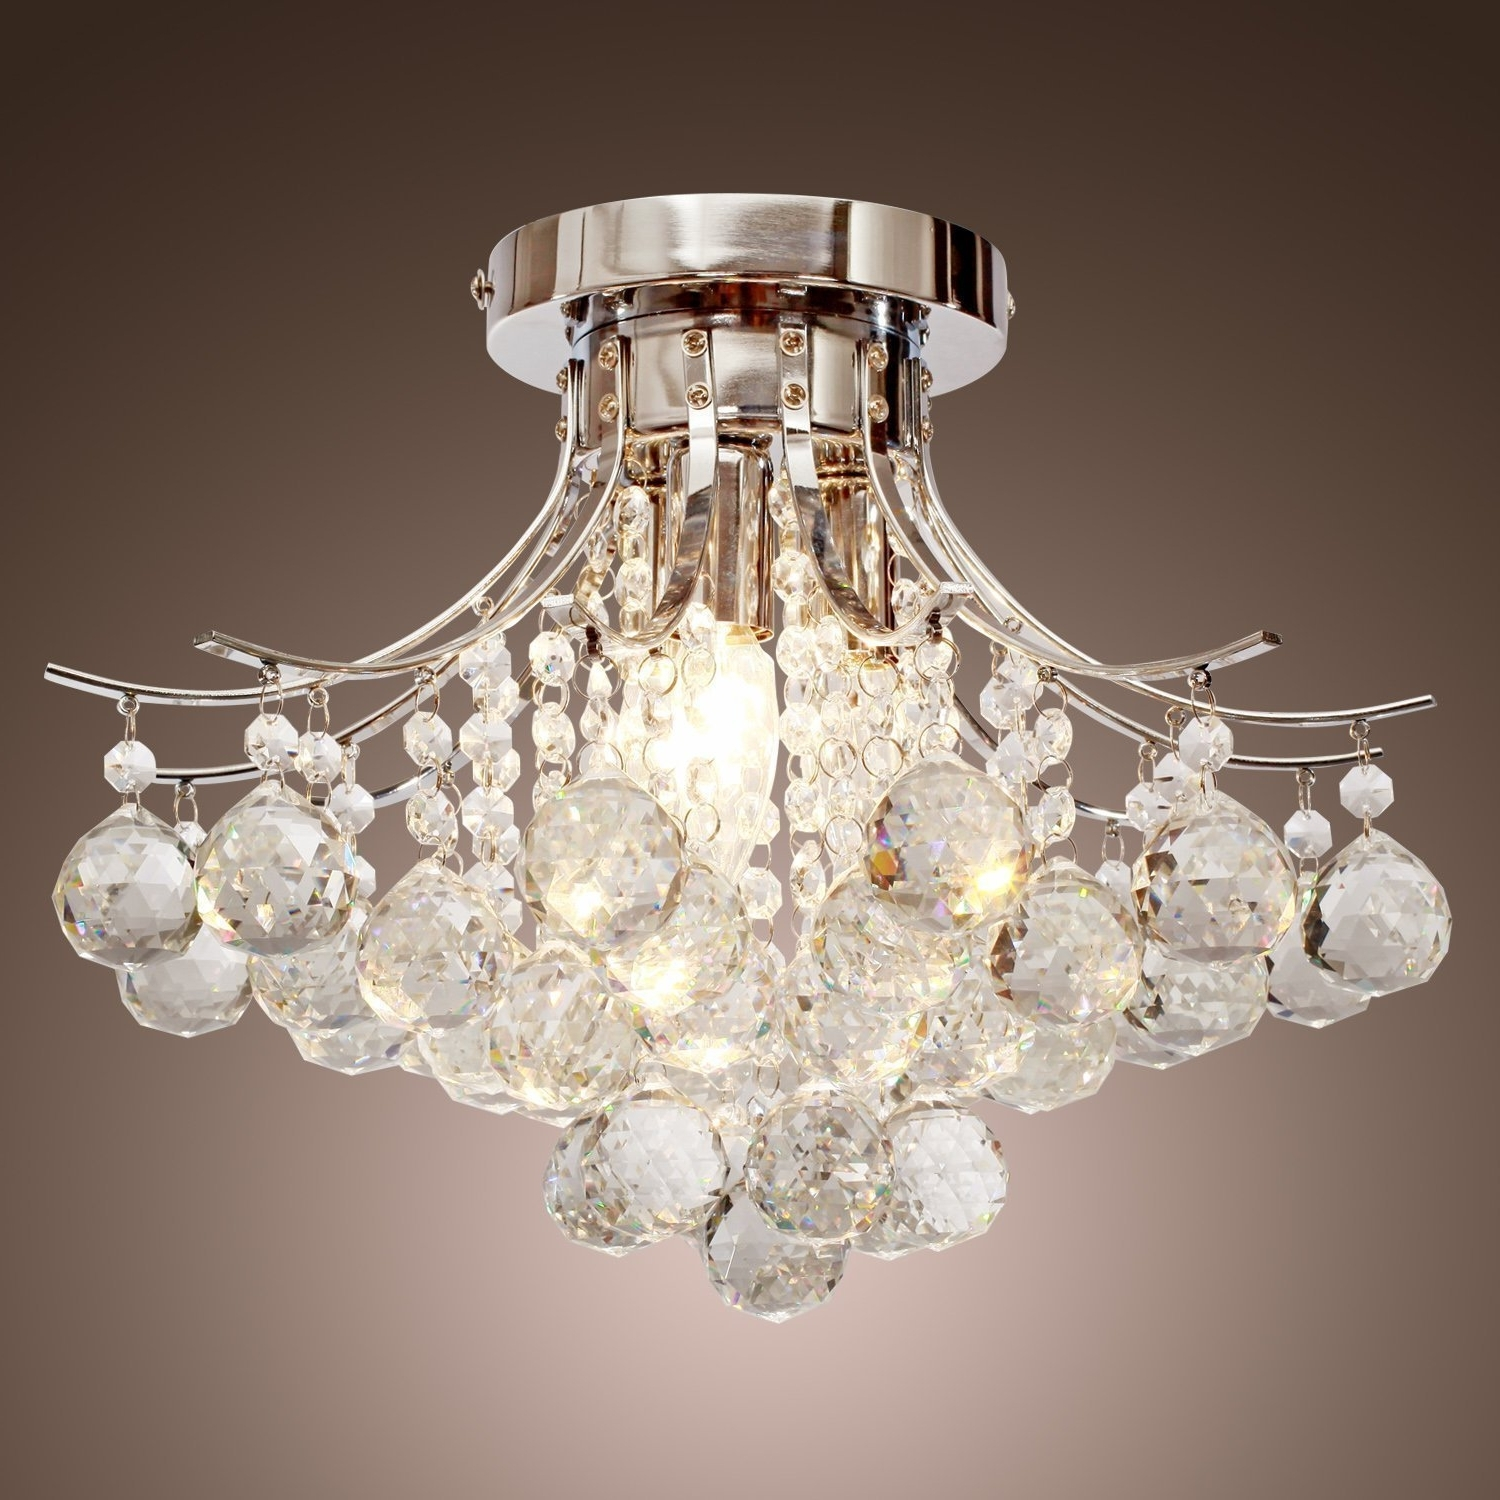 Best And Newest Chandelier For Low Ceiling Throughout Light : Living Room Ceiling Lights Close To Flush Mount Lighting (View 14 of 15)